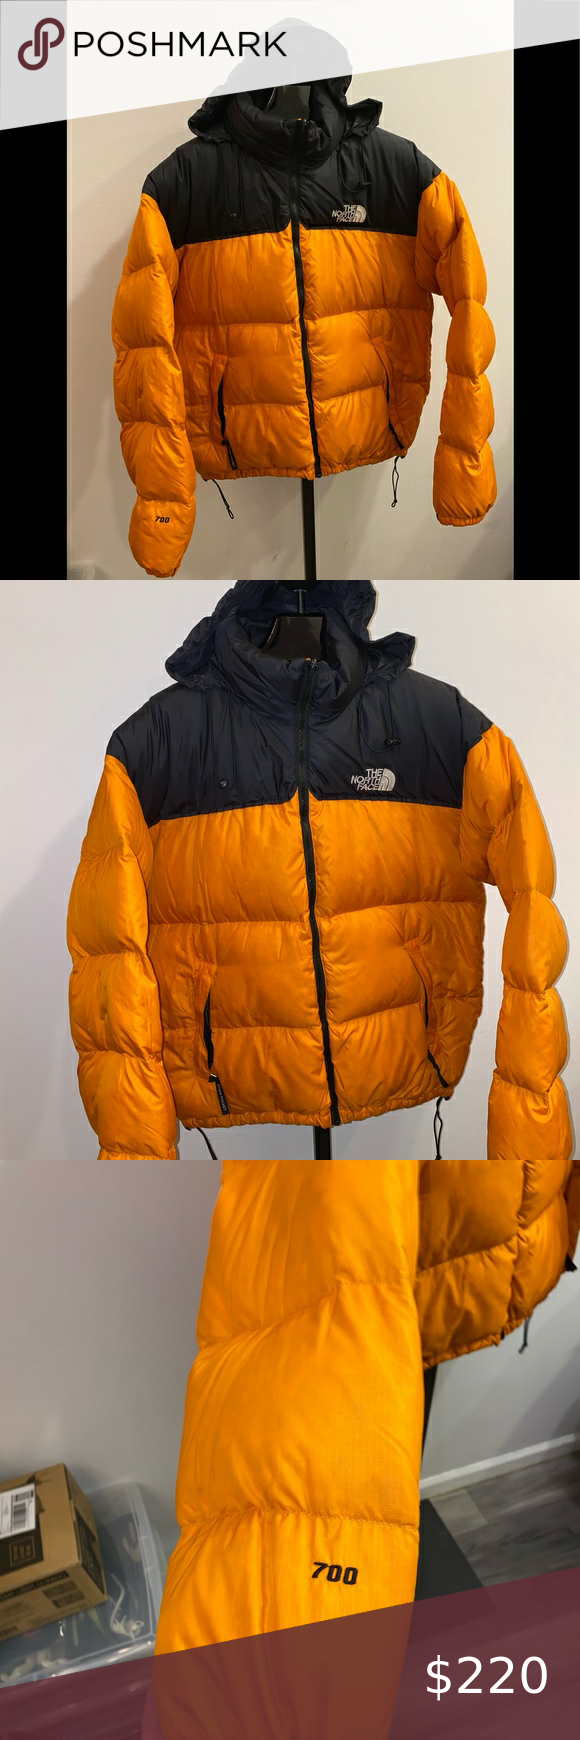 Vintage The North Face 700 Nuptse Mango North Face 700 The North Face Rare Clothing [ 1740 x 580 Pixel ]